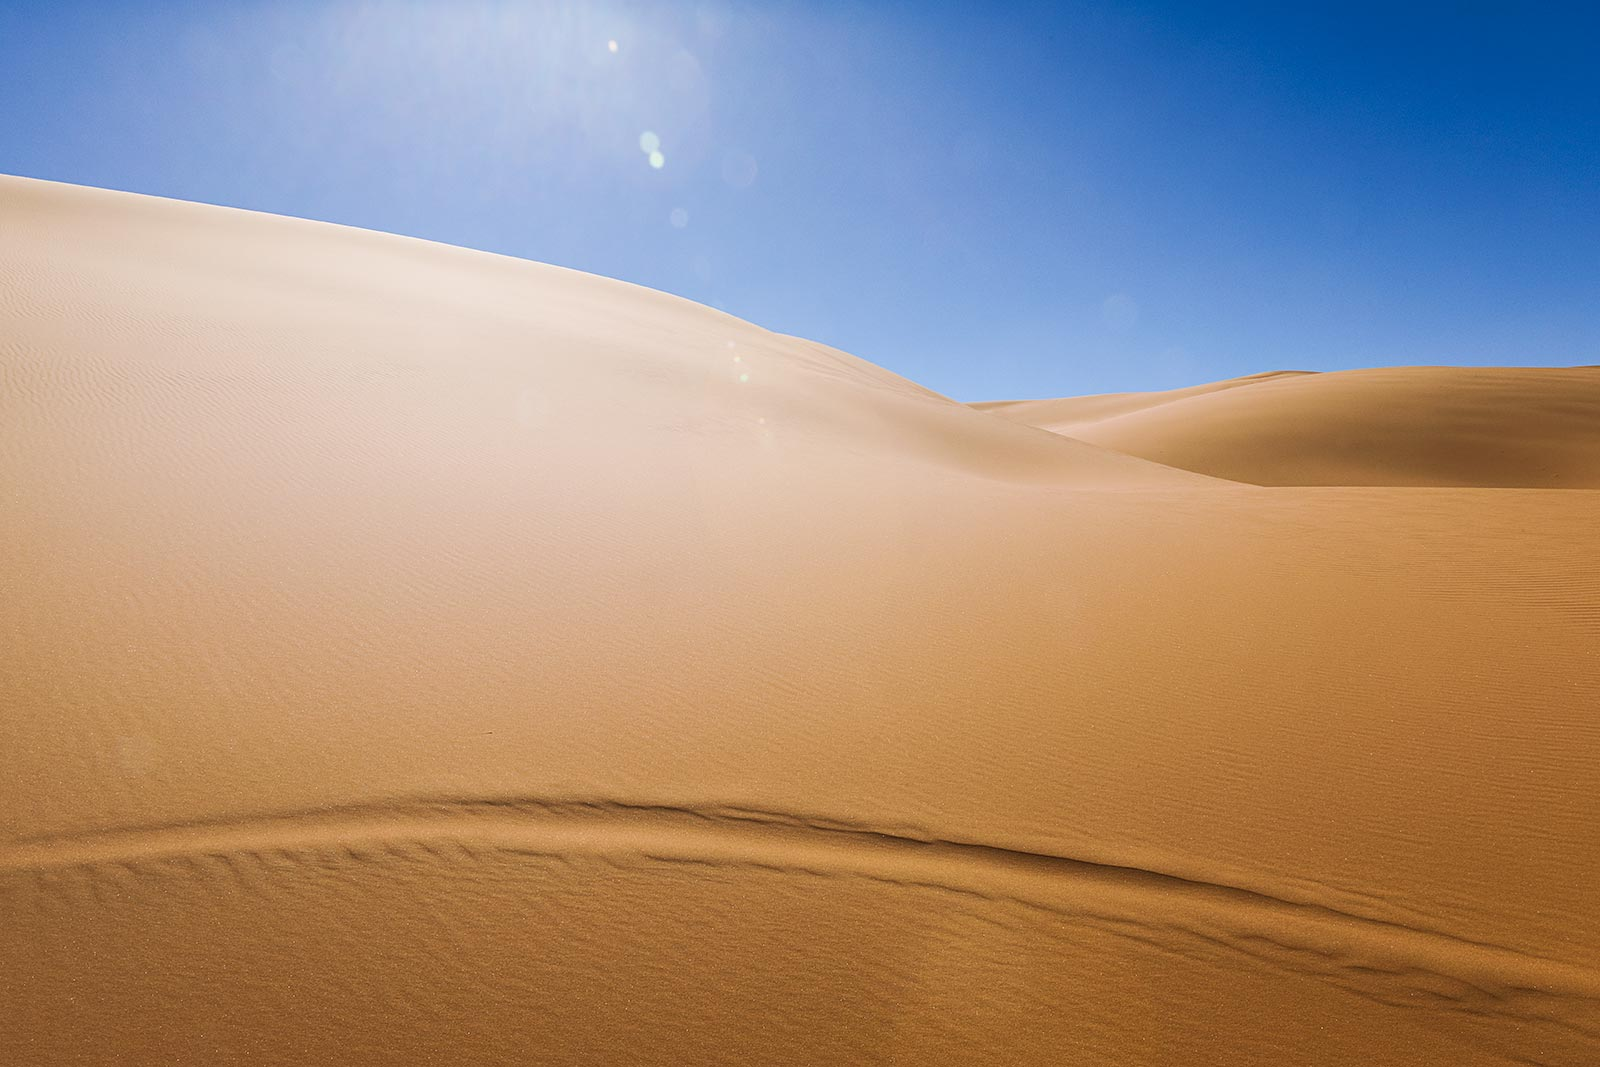 The Erg Chebbi sand dunes are spectacular at any time of day, but late afternoon was really the best time to view them.